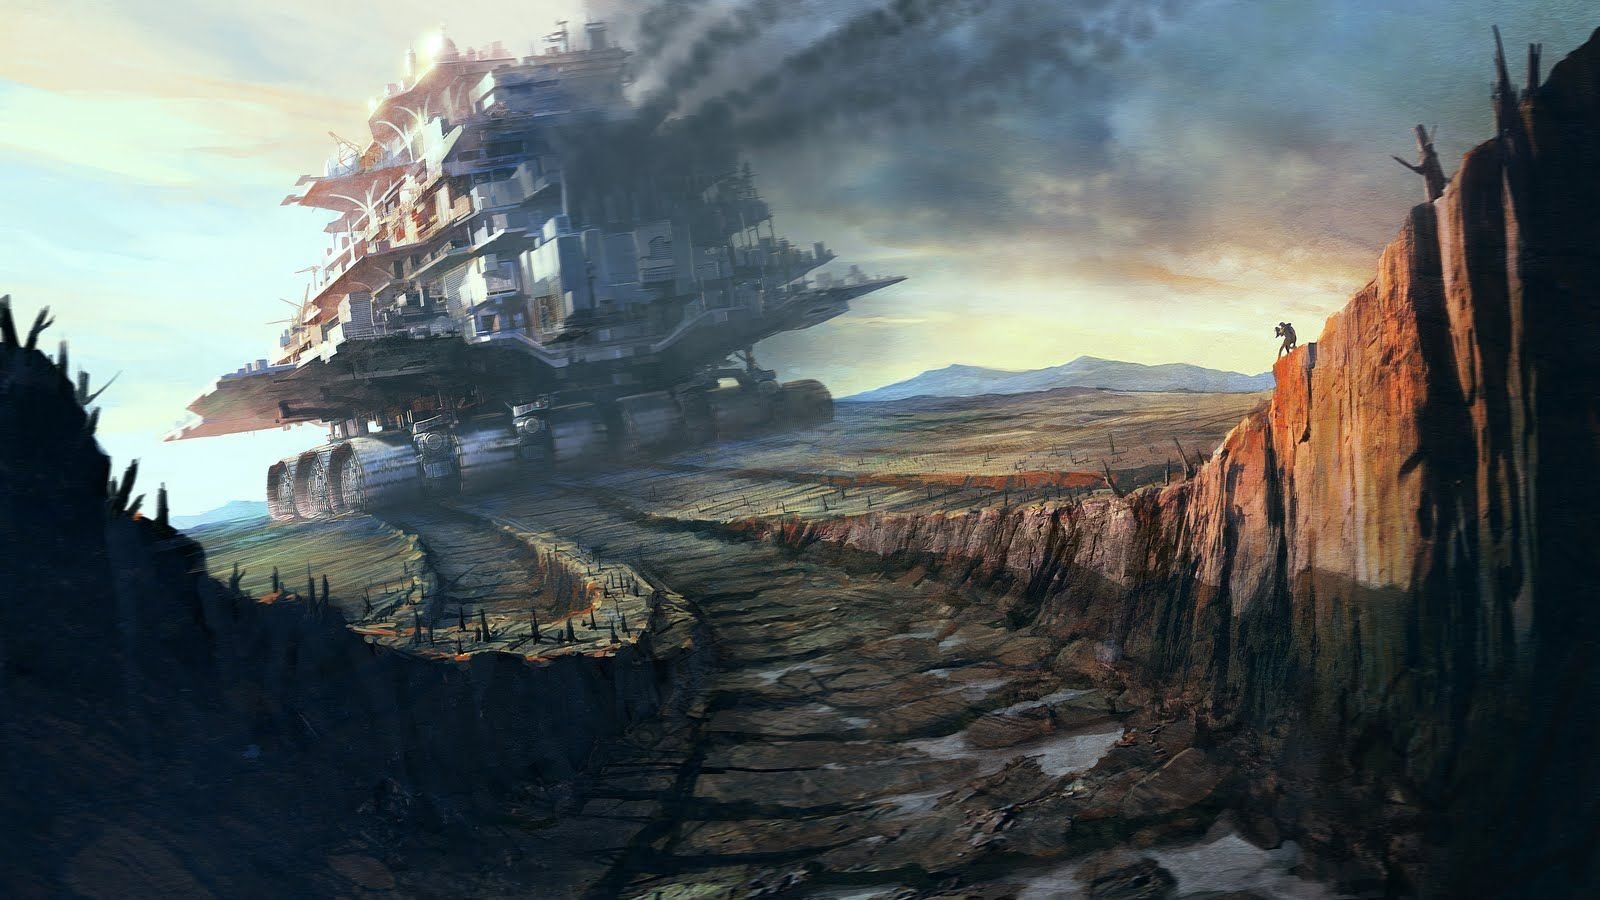 Post Apocalyptic Dystopian Wallpaper Dump As Requested By Rayquazasdarkbrother Fantasy Landscape Mortal Engines Steampunk Wallpaper